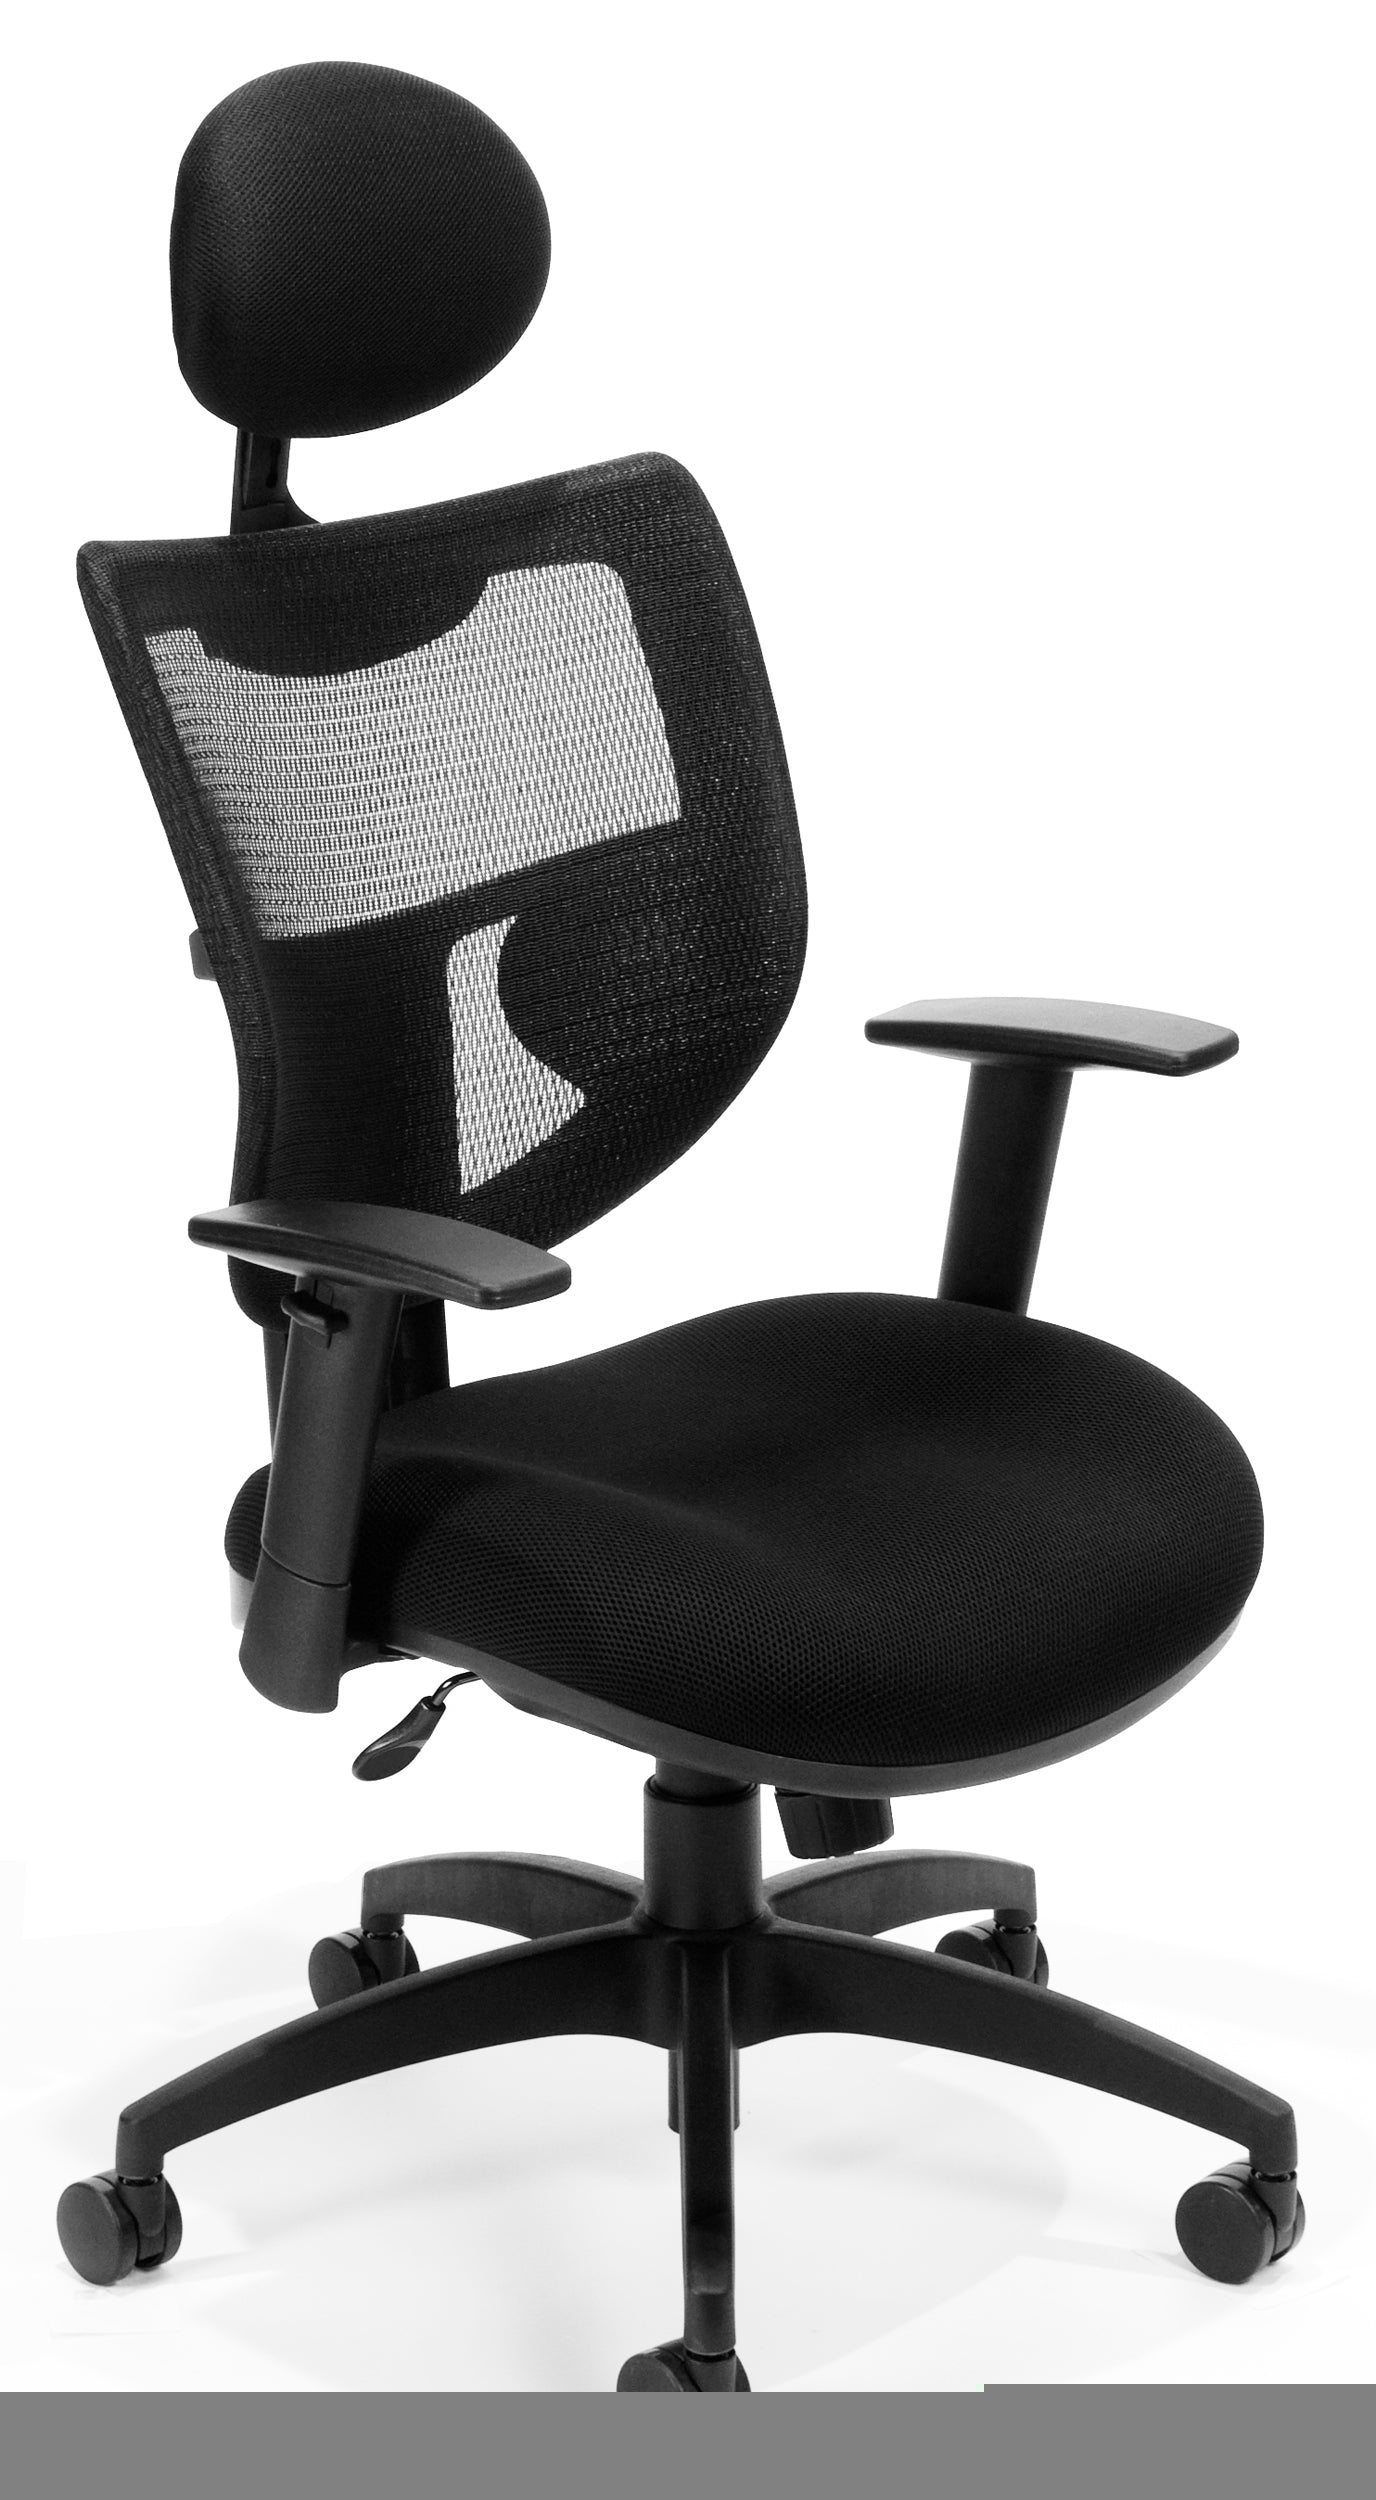 Model 580 Parker Ridge Series Mesh Executive Task Chair with Headrest